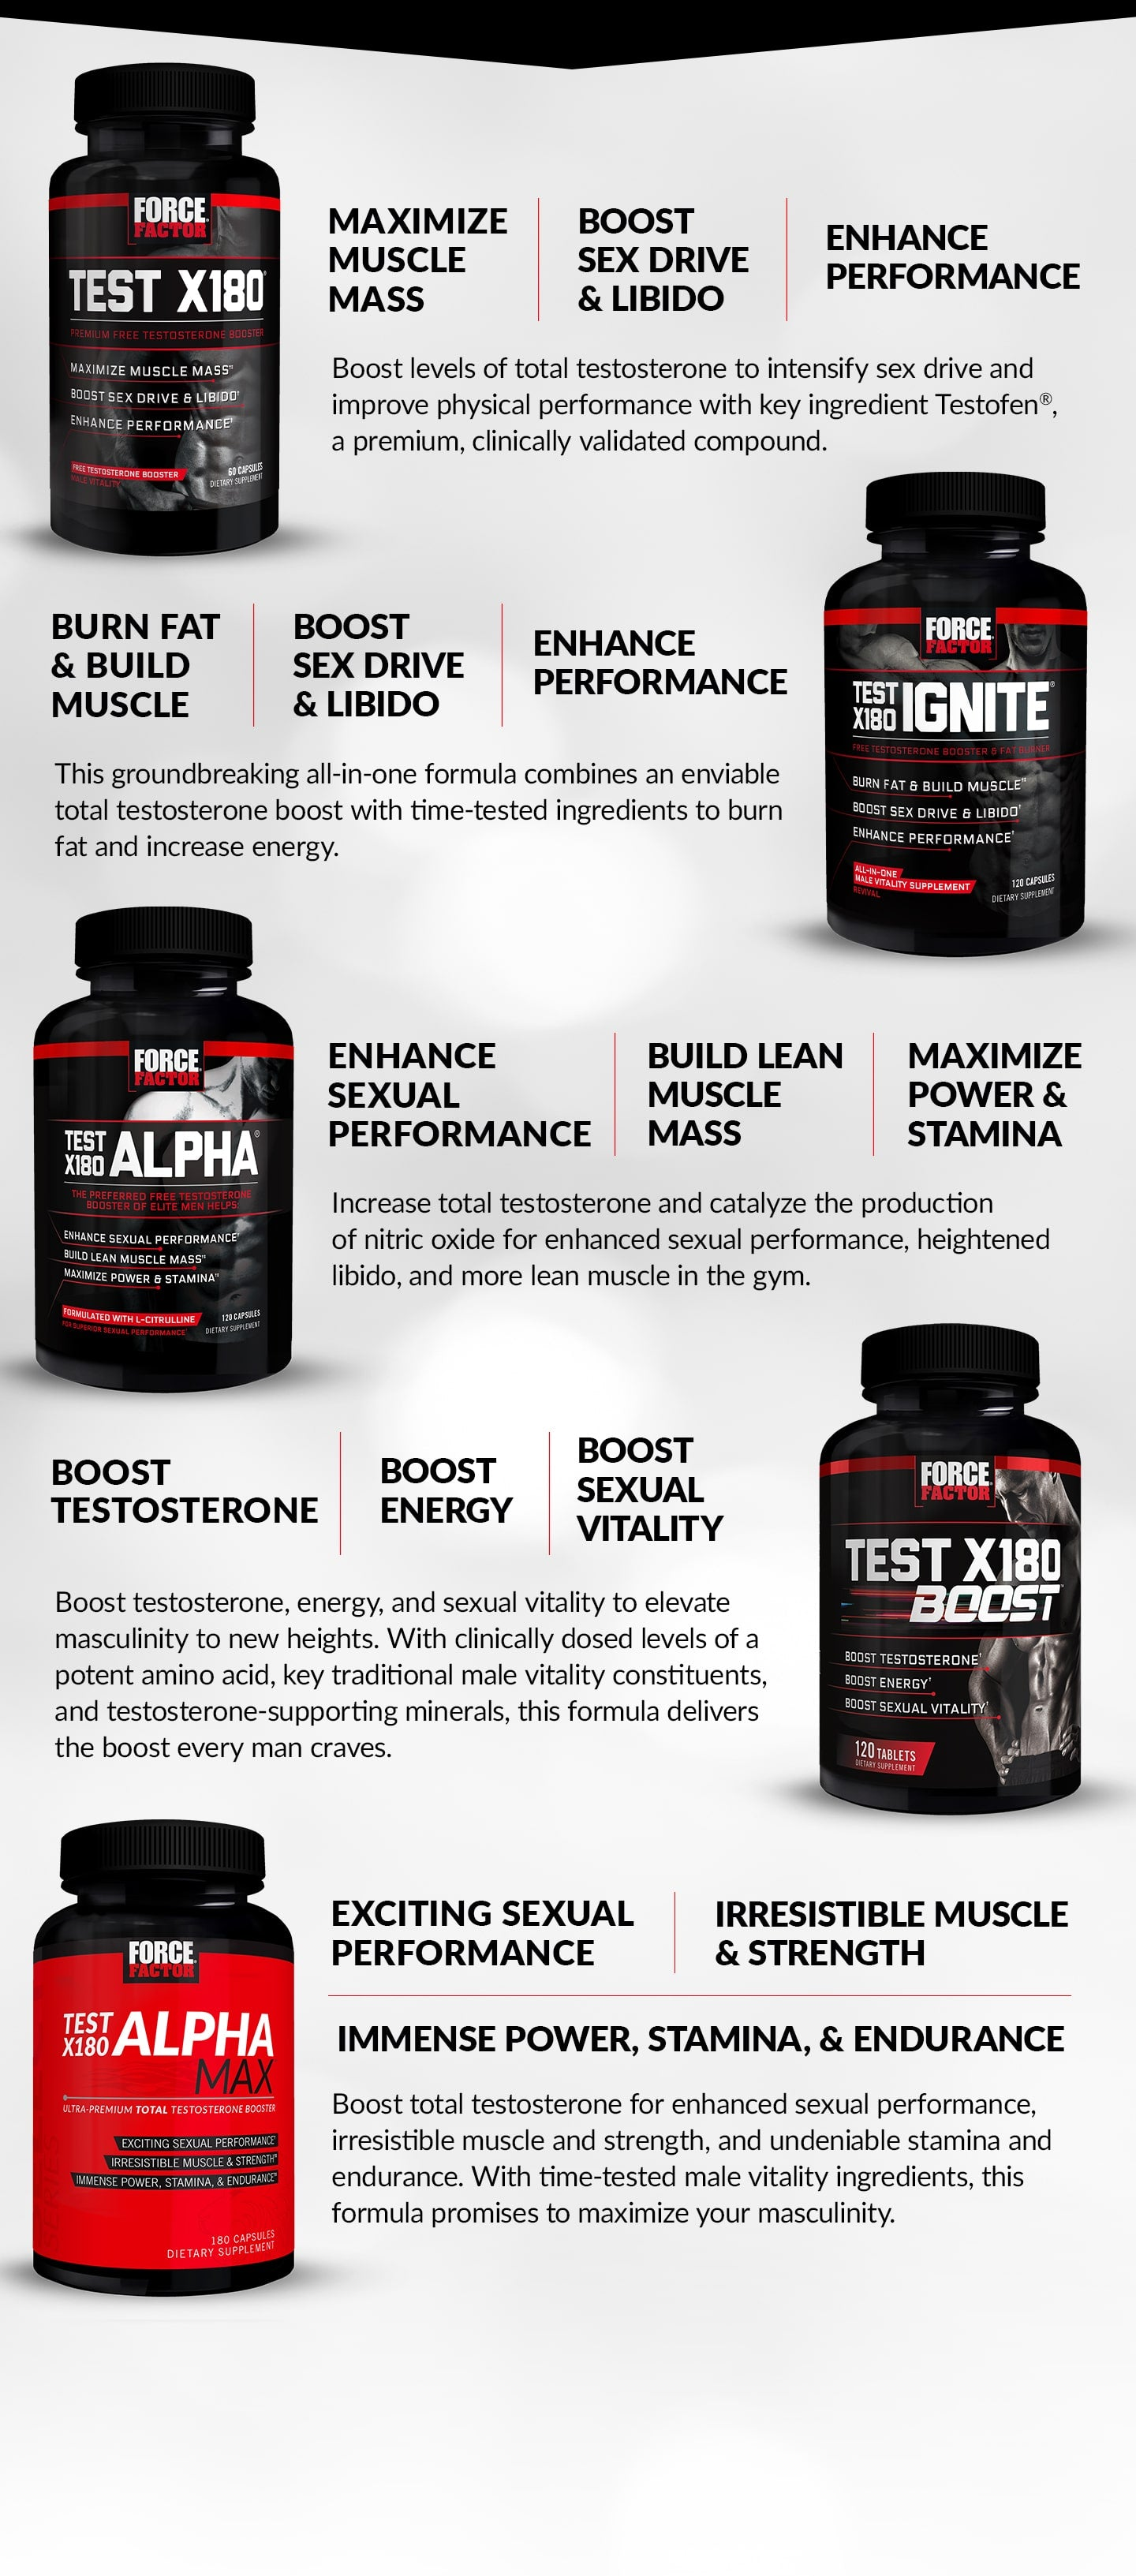 Test X180® - Maximize Muscle Mass, Boost Sex Drive & Libido, Enhance Performance. Boost levels of total testosterone to intensify sex drive and improve physical performance with key ingredient Testofen®, a premium, clinically supported compound. Test X180 Ignite® - Burn Fat & Build Muscle, Boost Sex Drive & Libido, Enhance Performance. This groundbreaking all-in-one formula combines an enviable total testosterone boost with time-tested ingredients to burn fat and increase energy. Test X180 Alpha® - Enhance Sexual Performance, Build Lean Muscle Mass, Maximize Power & Stamina. Increase total testosterone and catalyze the production of nitric oxide for enhanced sexual performance, heightened libido, and more lean muscle in the gym. Test X180 Boost® - Boost Testosterone, Boost Energy, Boost Sexual Vitality. Boost testosterone, energy, and sexual vitality to elevate masculinity to new heights. With clinically dosed levels of a potent amino acid, key traditional male vitality constituents, and testosterone-supporting minerals, this formula delivers the boost every man craves. Test X180 Alpha Max® - Exciting Sexual Performance, Irresistible Muscle & Strength, Immense Power, Stamina, & Endurance. Boost total testosterone for enhanced sexual performance, irresistible muscle and strength, and undeniable stamina and endurance. With time-tested male vitality ingredients, this formula promises to maximize your masculinity.